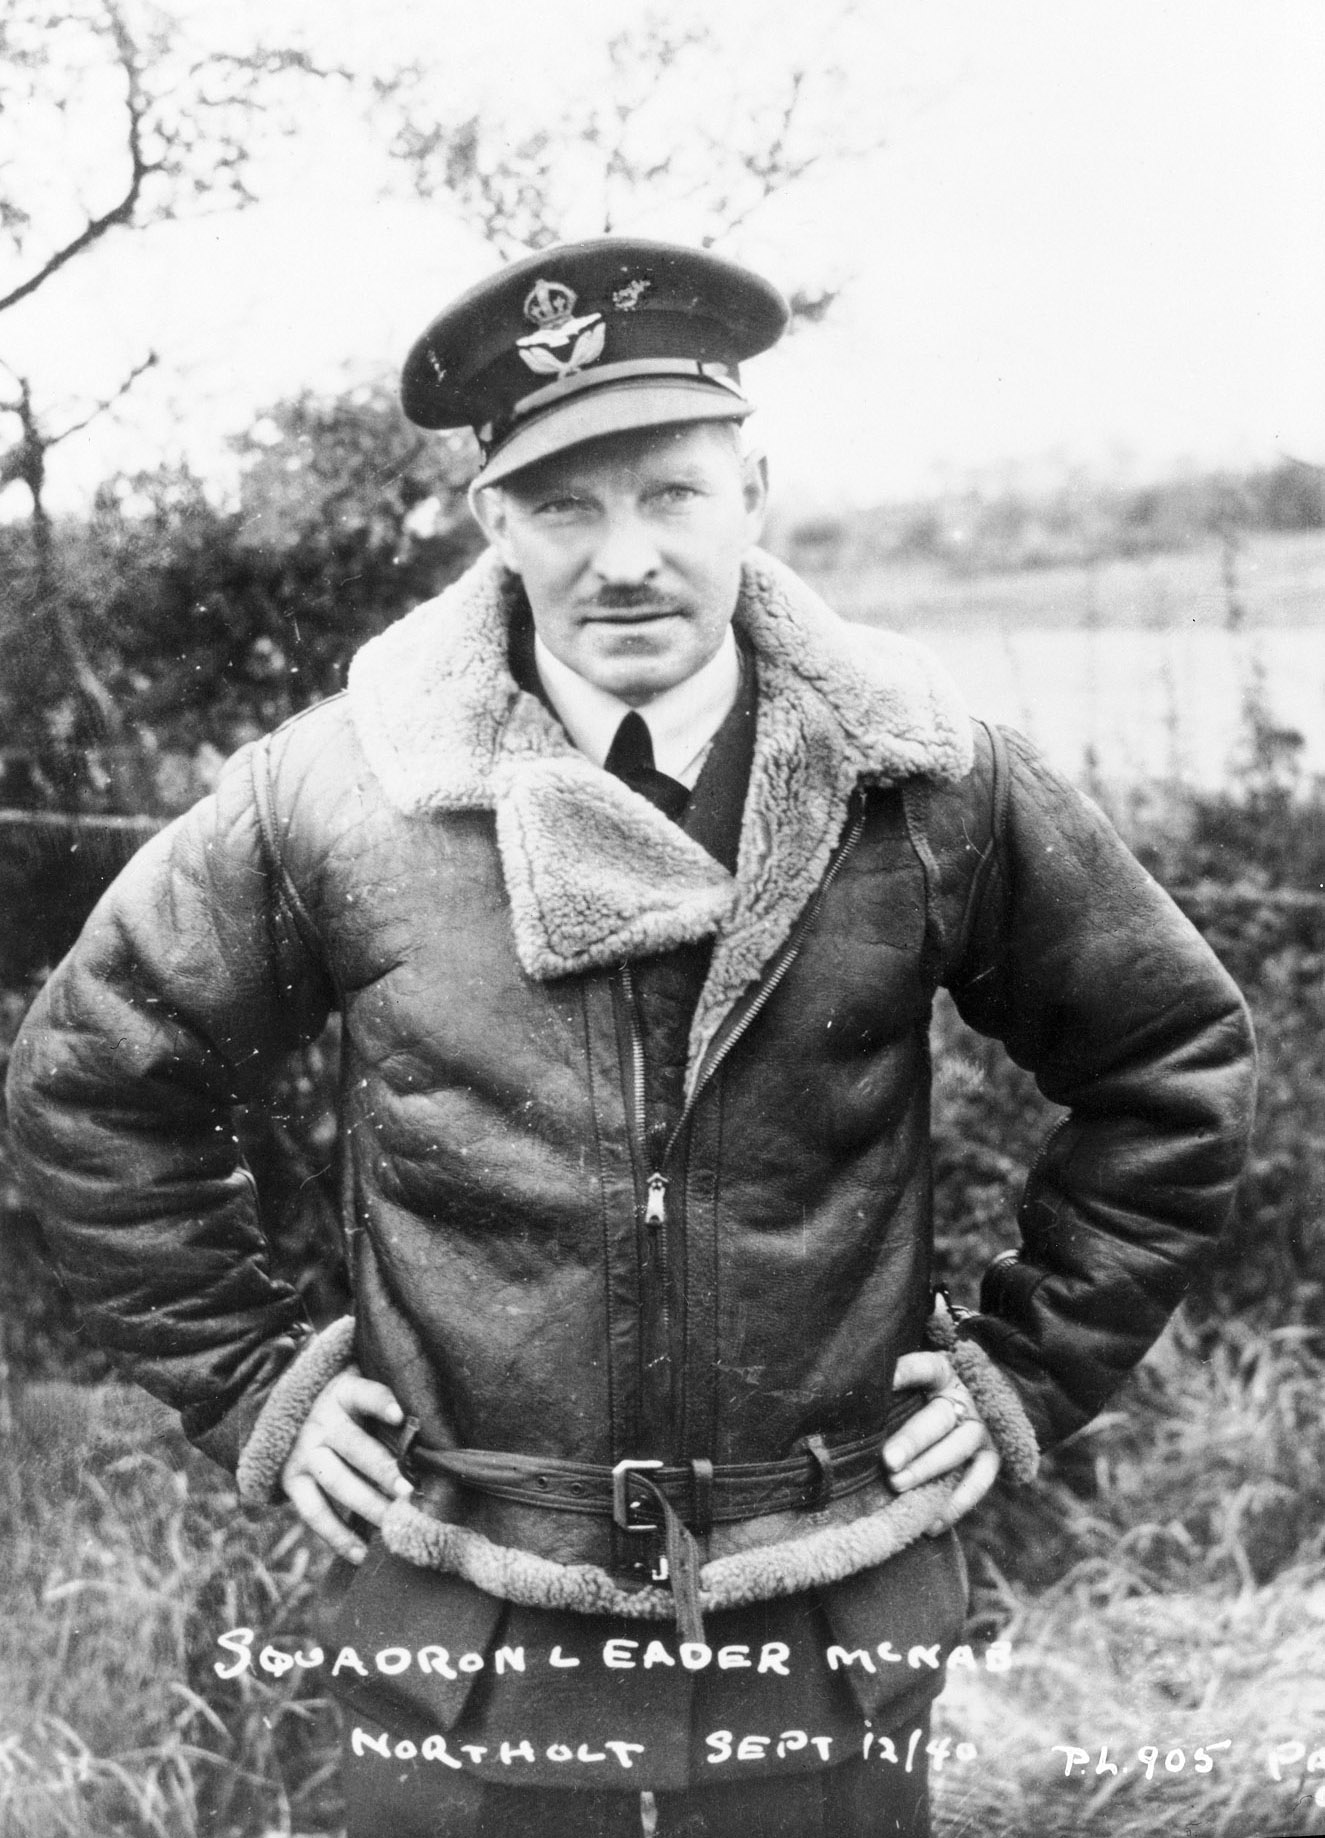 Squadron Leader Ernest Archibald McNab, photographed at Northolt, England, on October 24, 1940, as the Battle of Britain was winding down, went on the command the RCAF's 118 Squadron, whose role it was to provide air defence of Halifax, Nova Scotia. PHOTO: DND Archives, PL-905